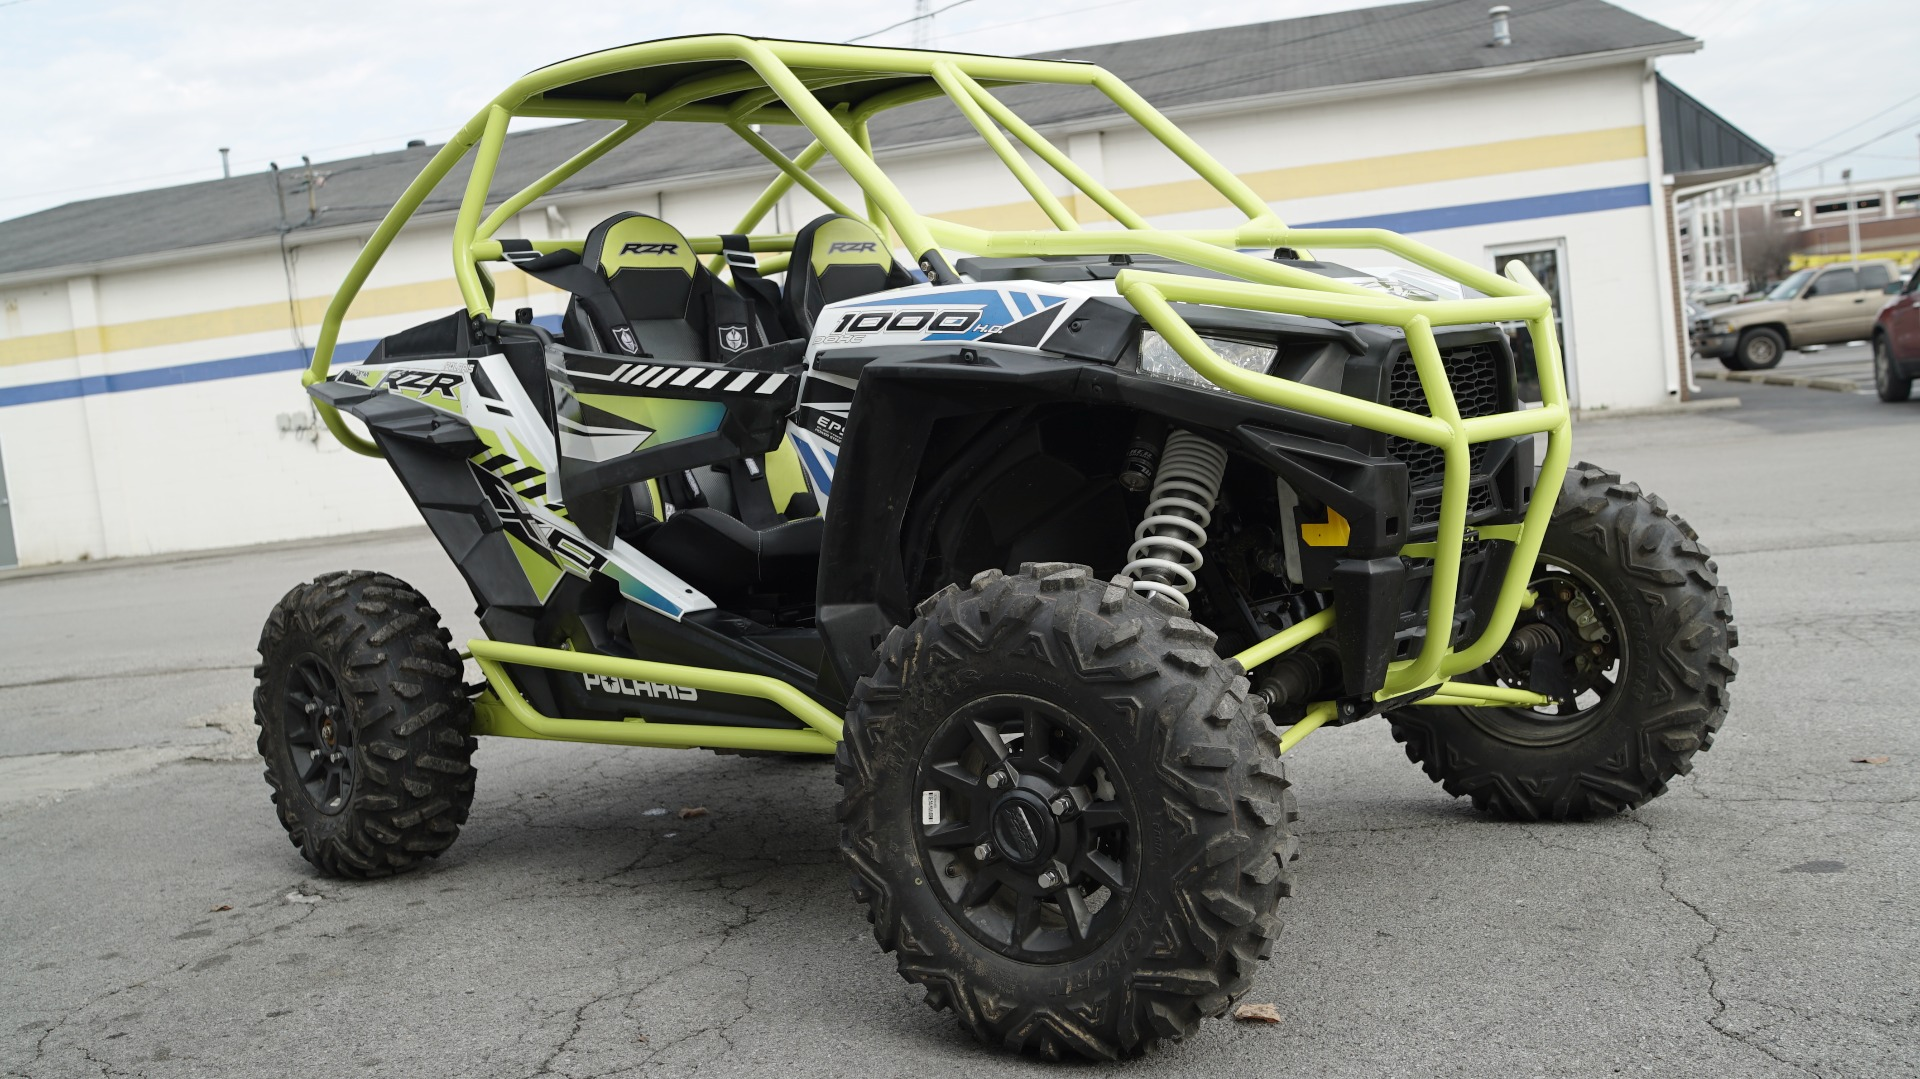 Polaris RZR 1000 with Yellow Roll Cage Image 13